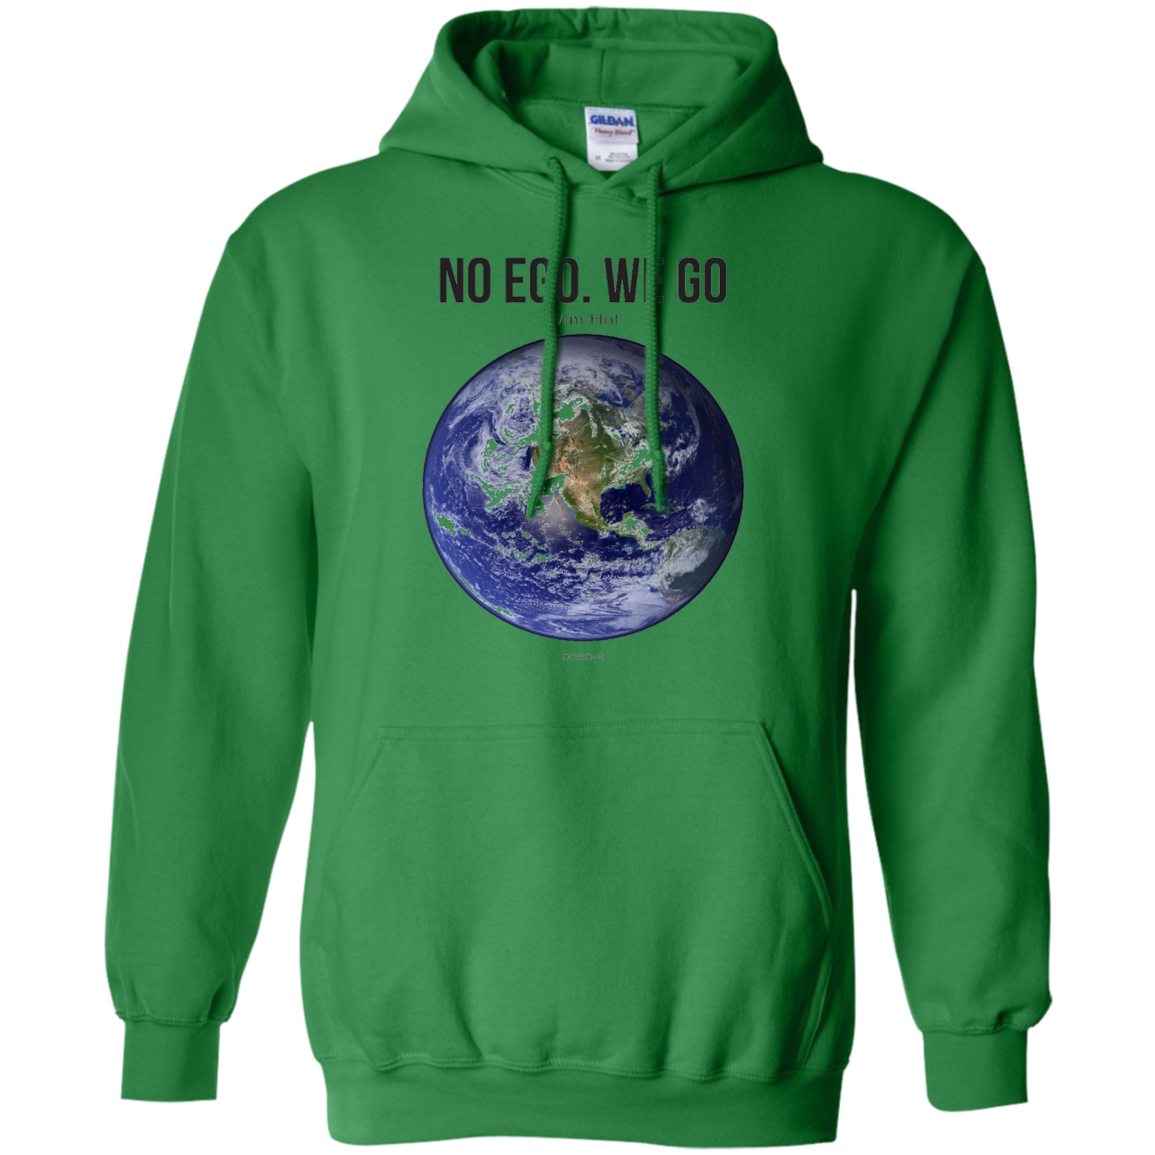 No Ego. We Go. (Earth) Inspired by Wim 'The Iceman' Hof